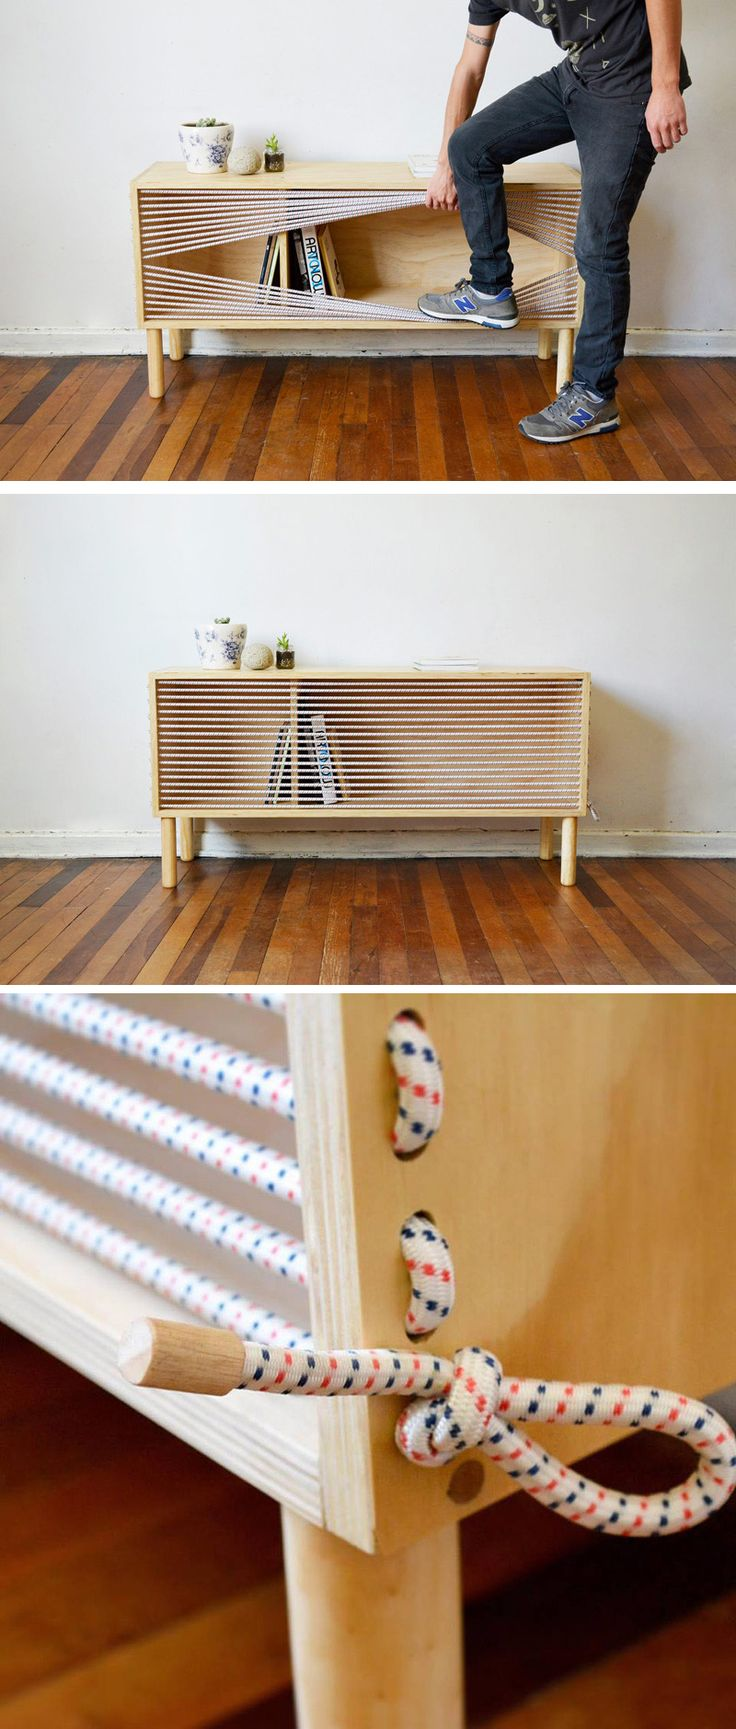 Cuerda (rope or string in English), a wooden sideboard that was inspired by the ropes of a boxing ring / Emmanuel Gonzalez Guzman